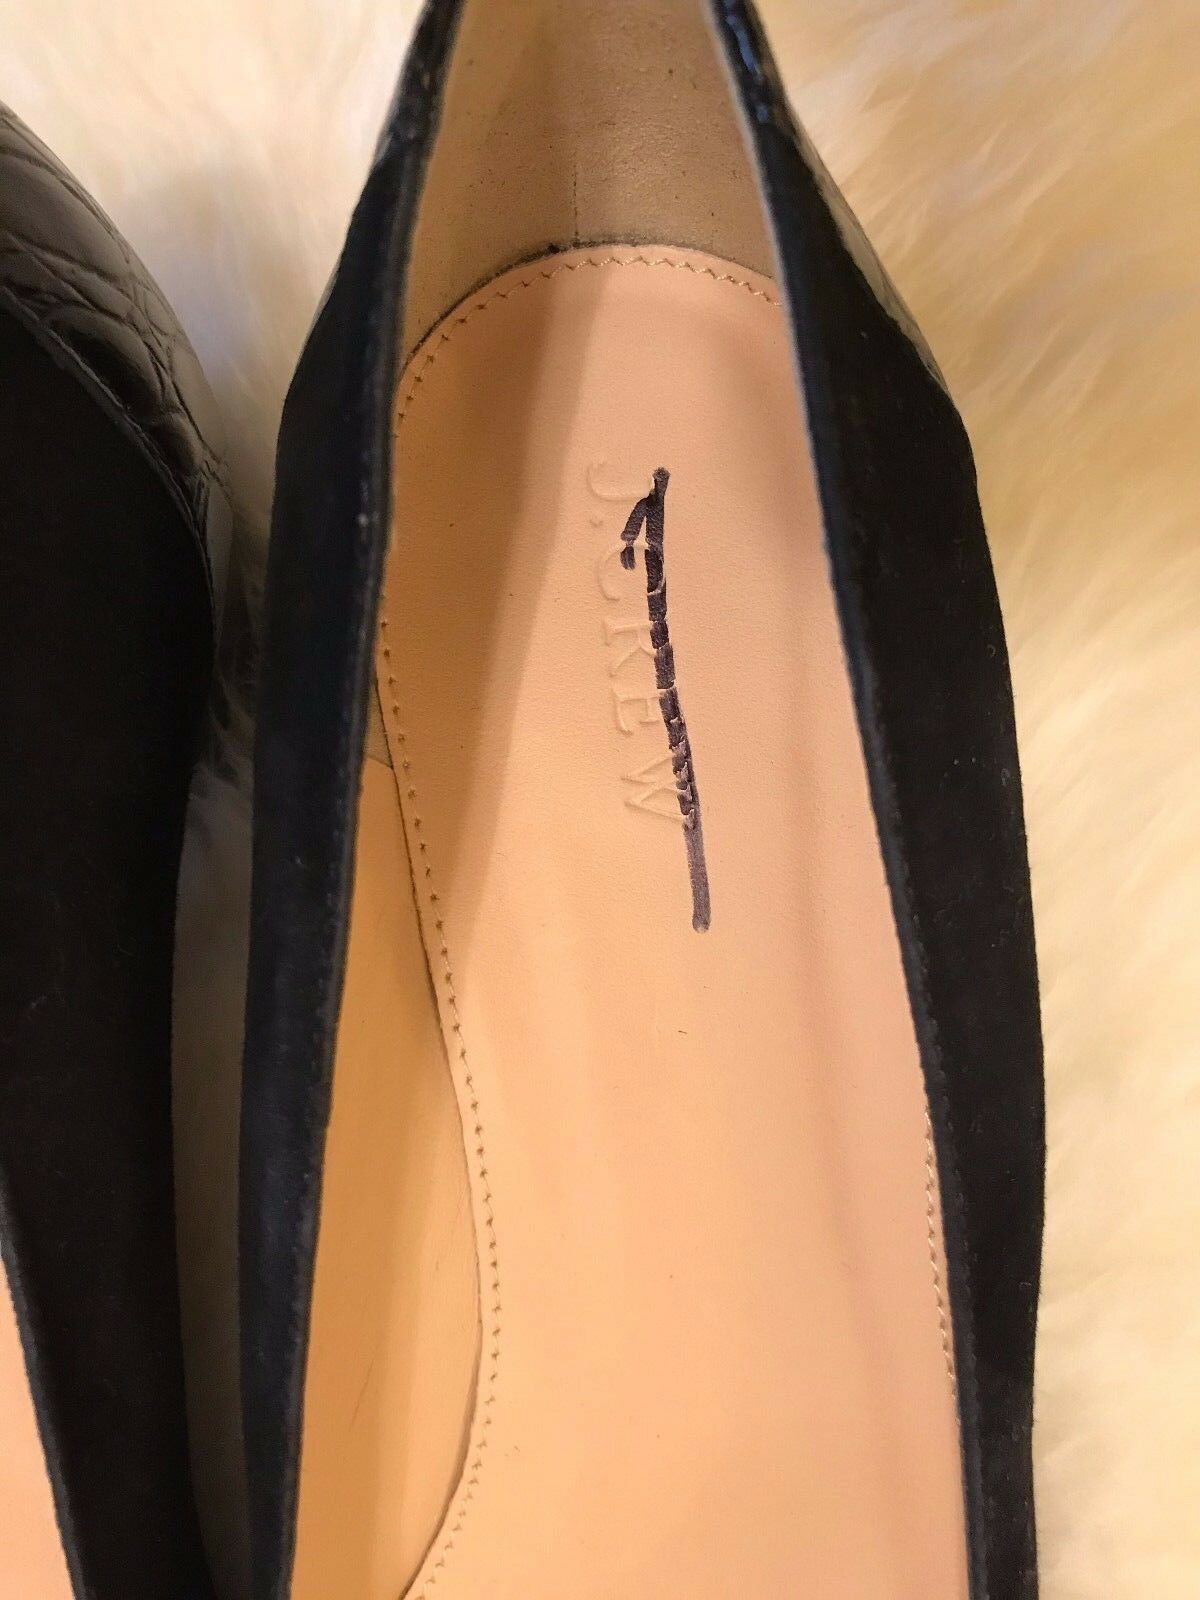 NEW J. CREW SUEDE HEEL PUMPS WITH STAMPED CROC HEEL SUEDE IN BLACK SZ 9.5 198 G8170 c70120